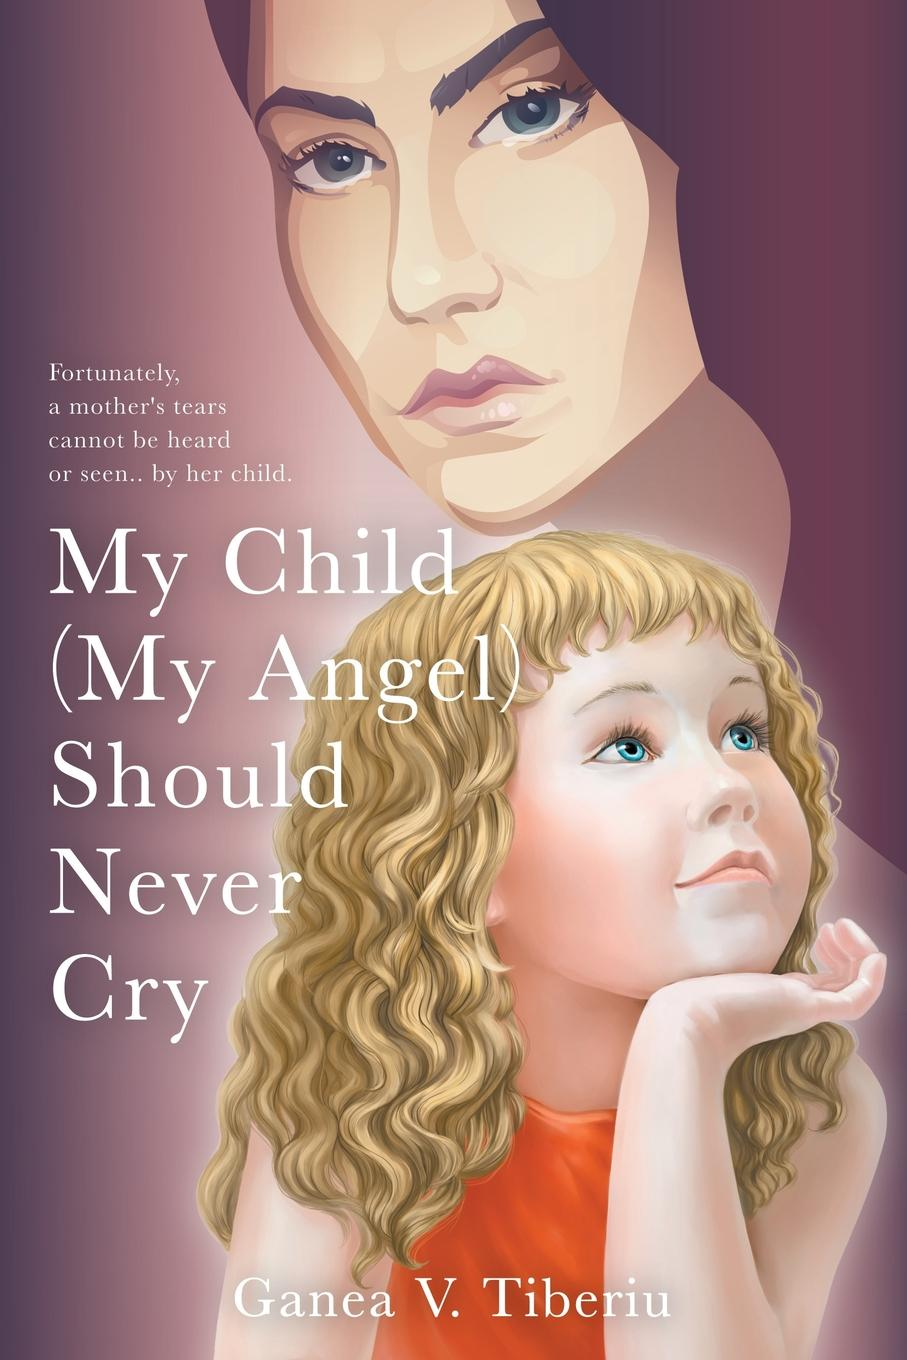 Ganea V. Tiberiu My Child (My Angel) Should Never Cry mary lyons husband not included